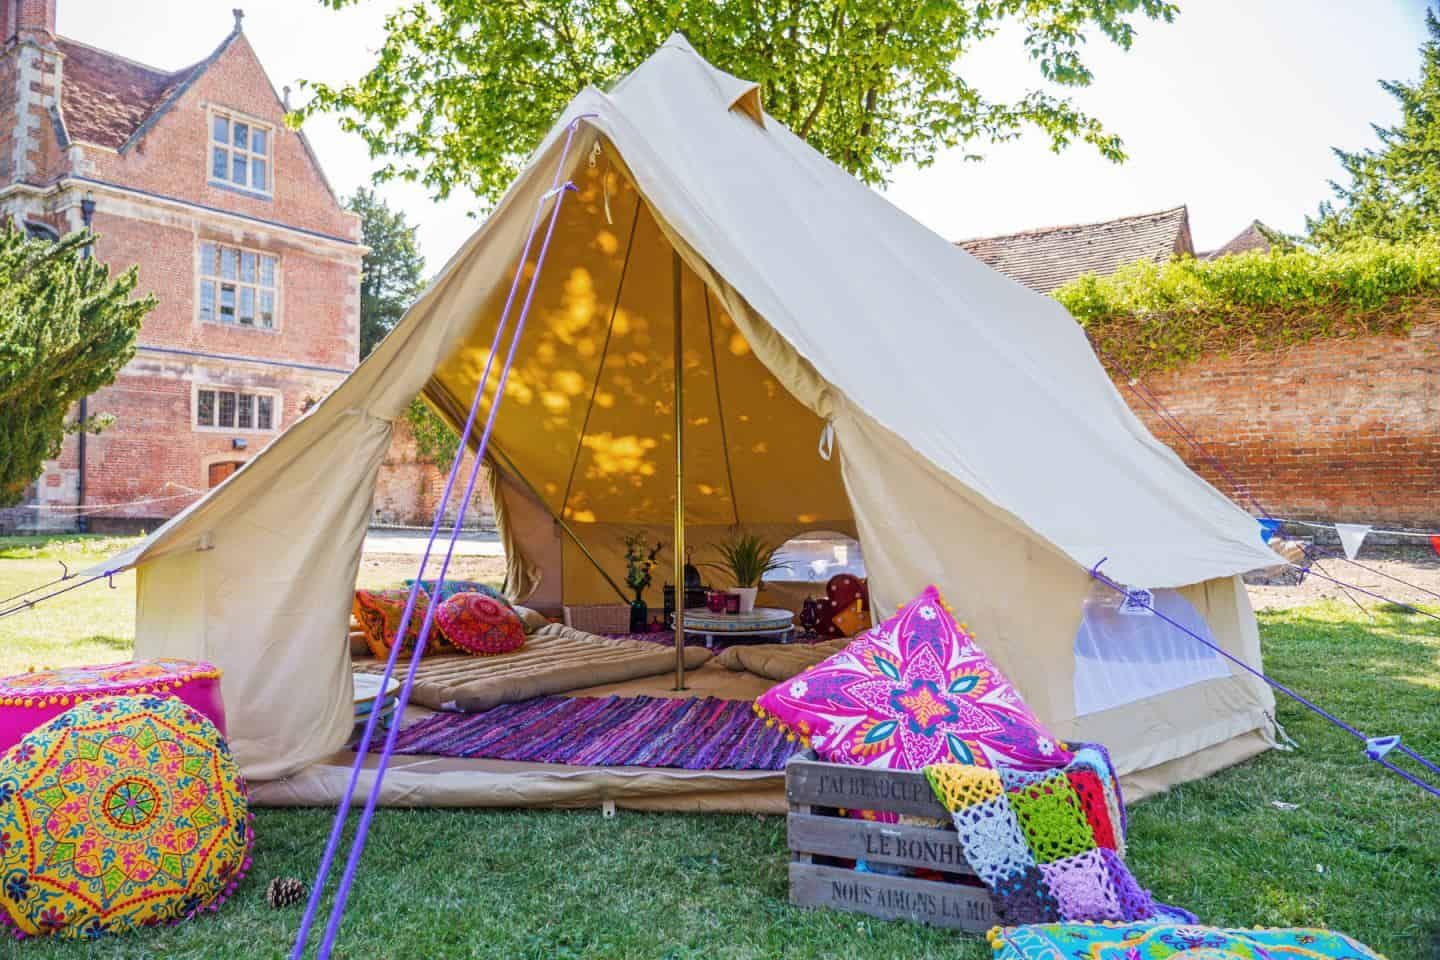 Glamping is a great idea for a summer staycation in your garden